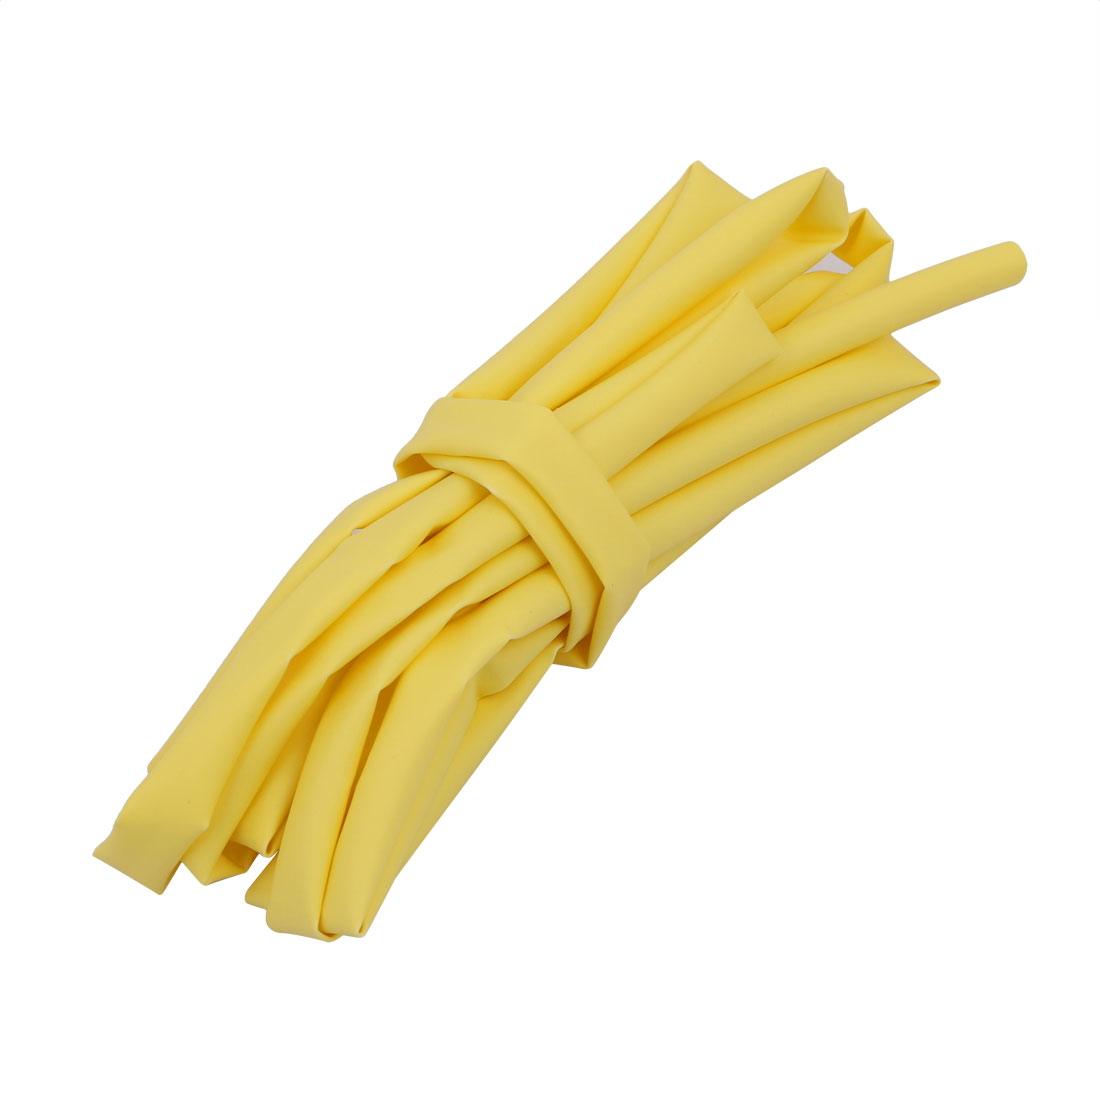 6.6Ft Length 5mm Inner Dia Insulated Heat Shrink Tube Sleeve Wire Wrap Yellow